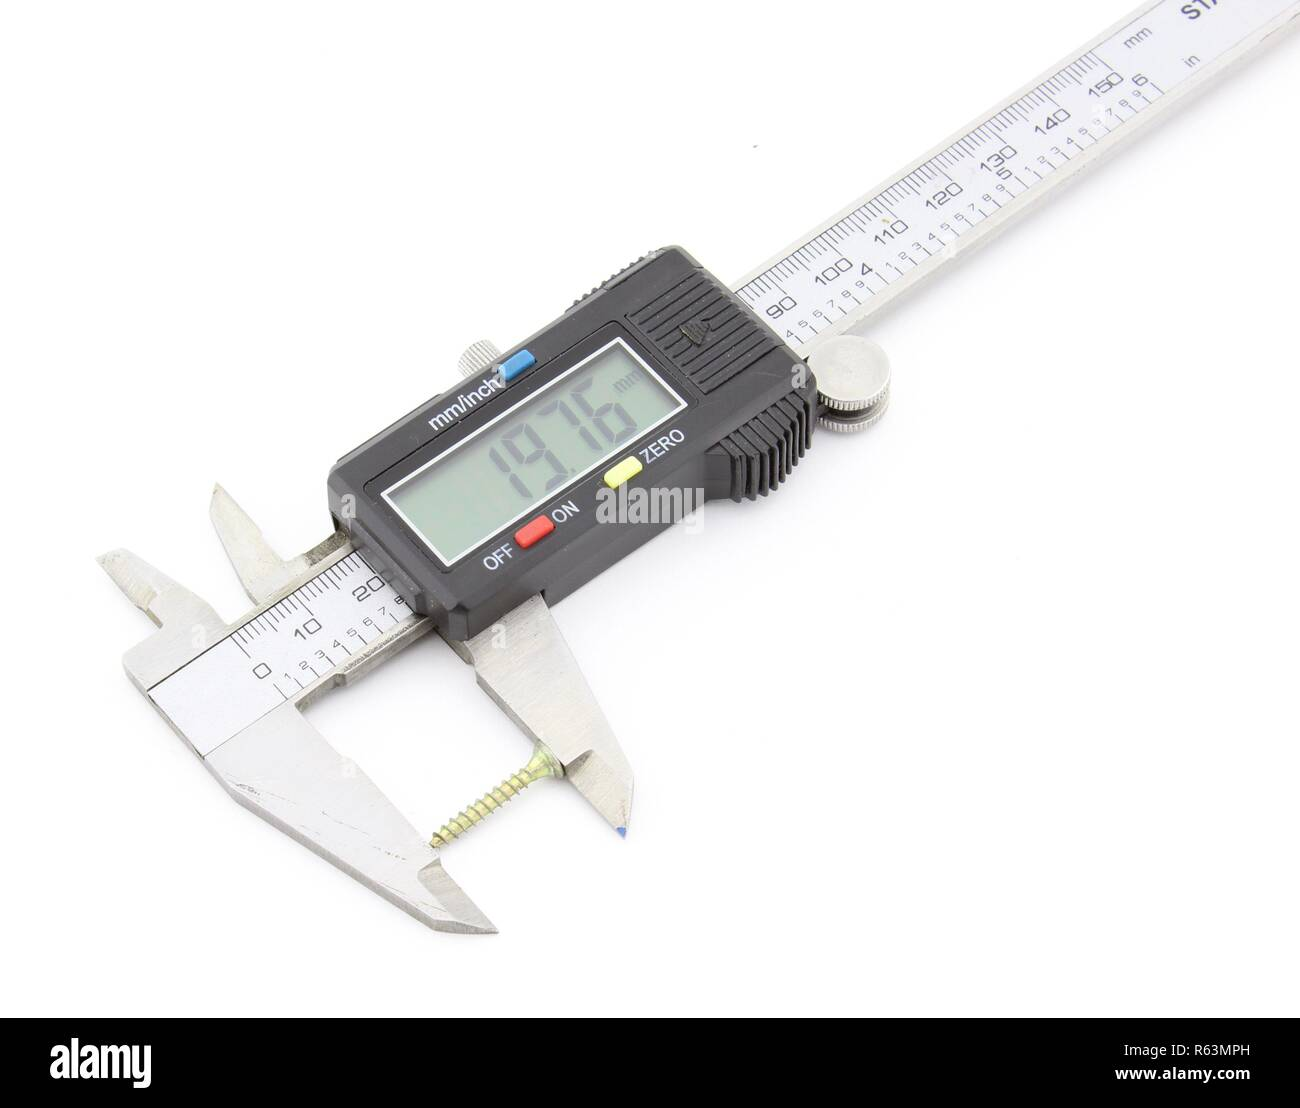 Digital caliper, screw measuring - Stock Image